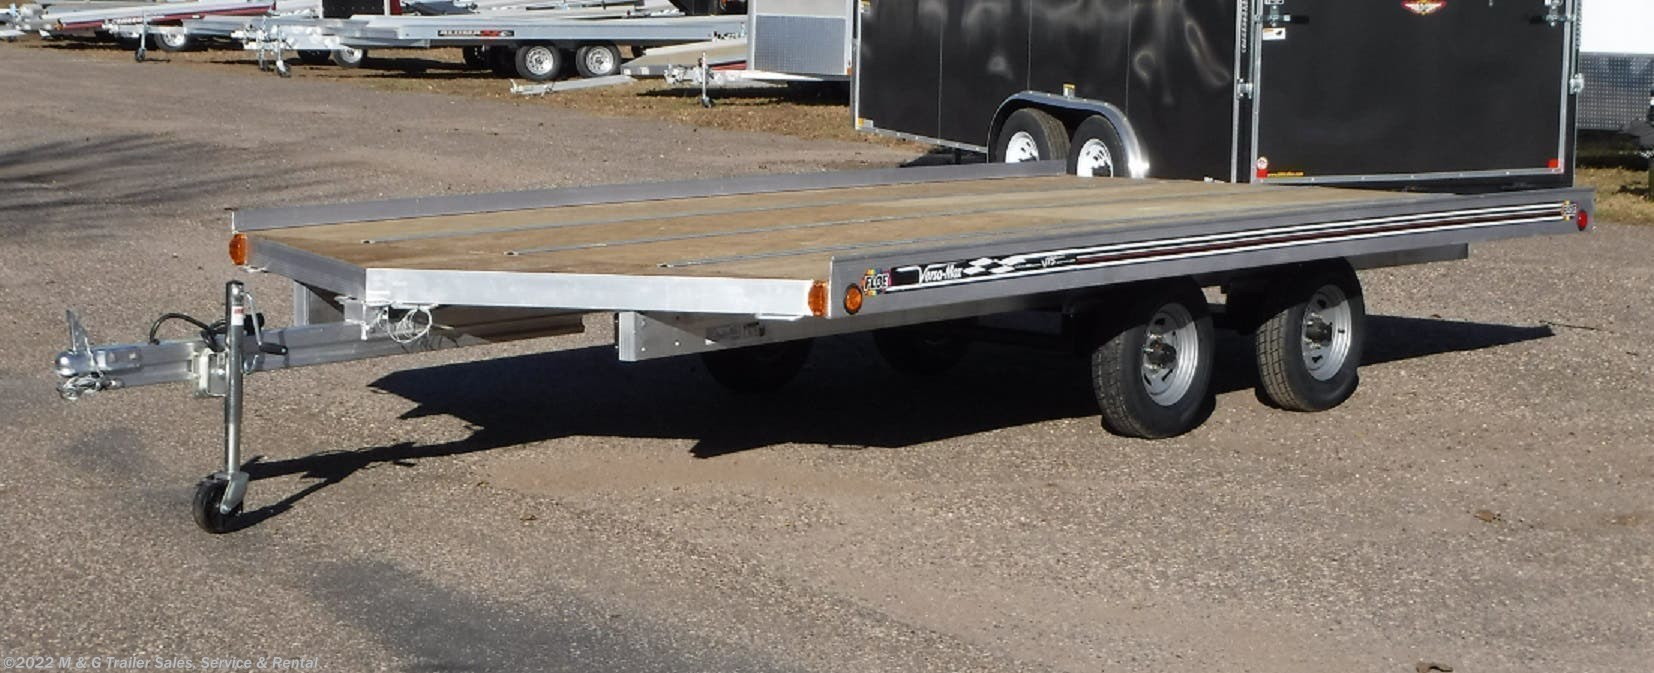 2021 FLOE Versa Max 16' Snowmobile Trailer - Stock #M002038